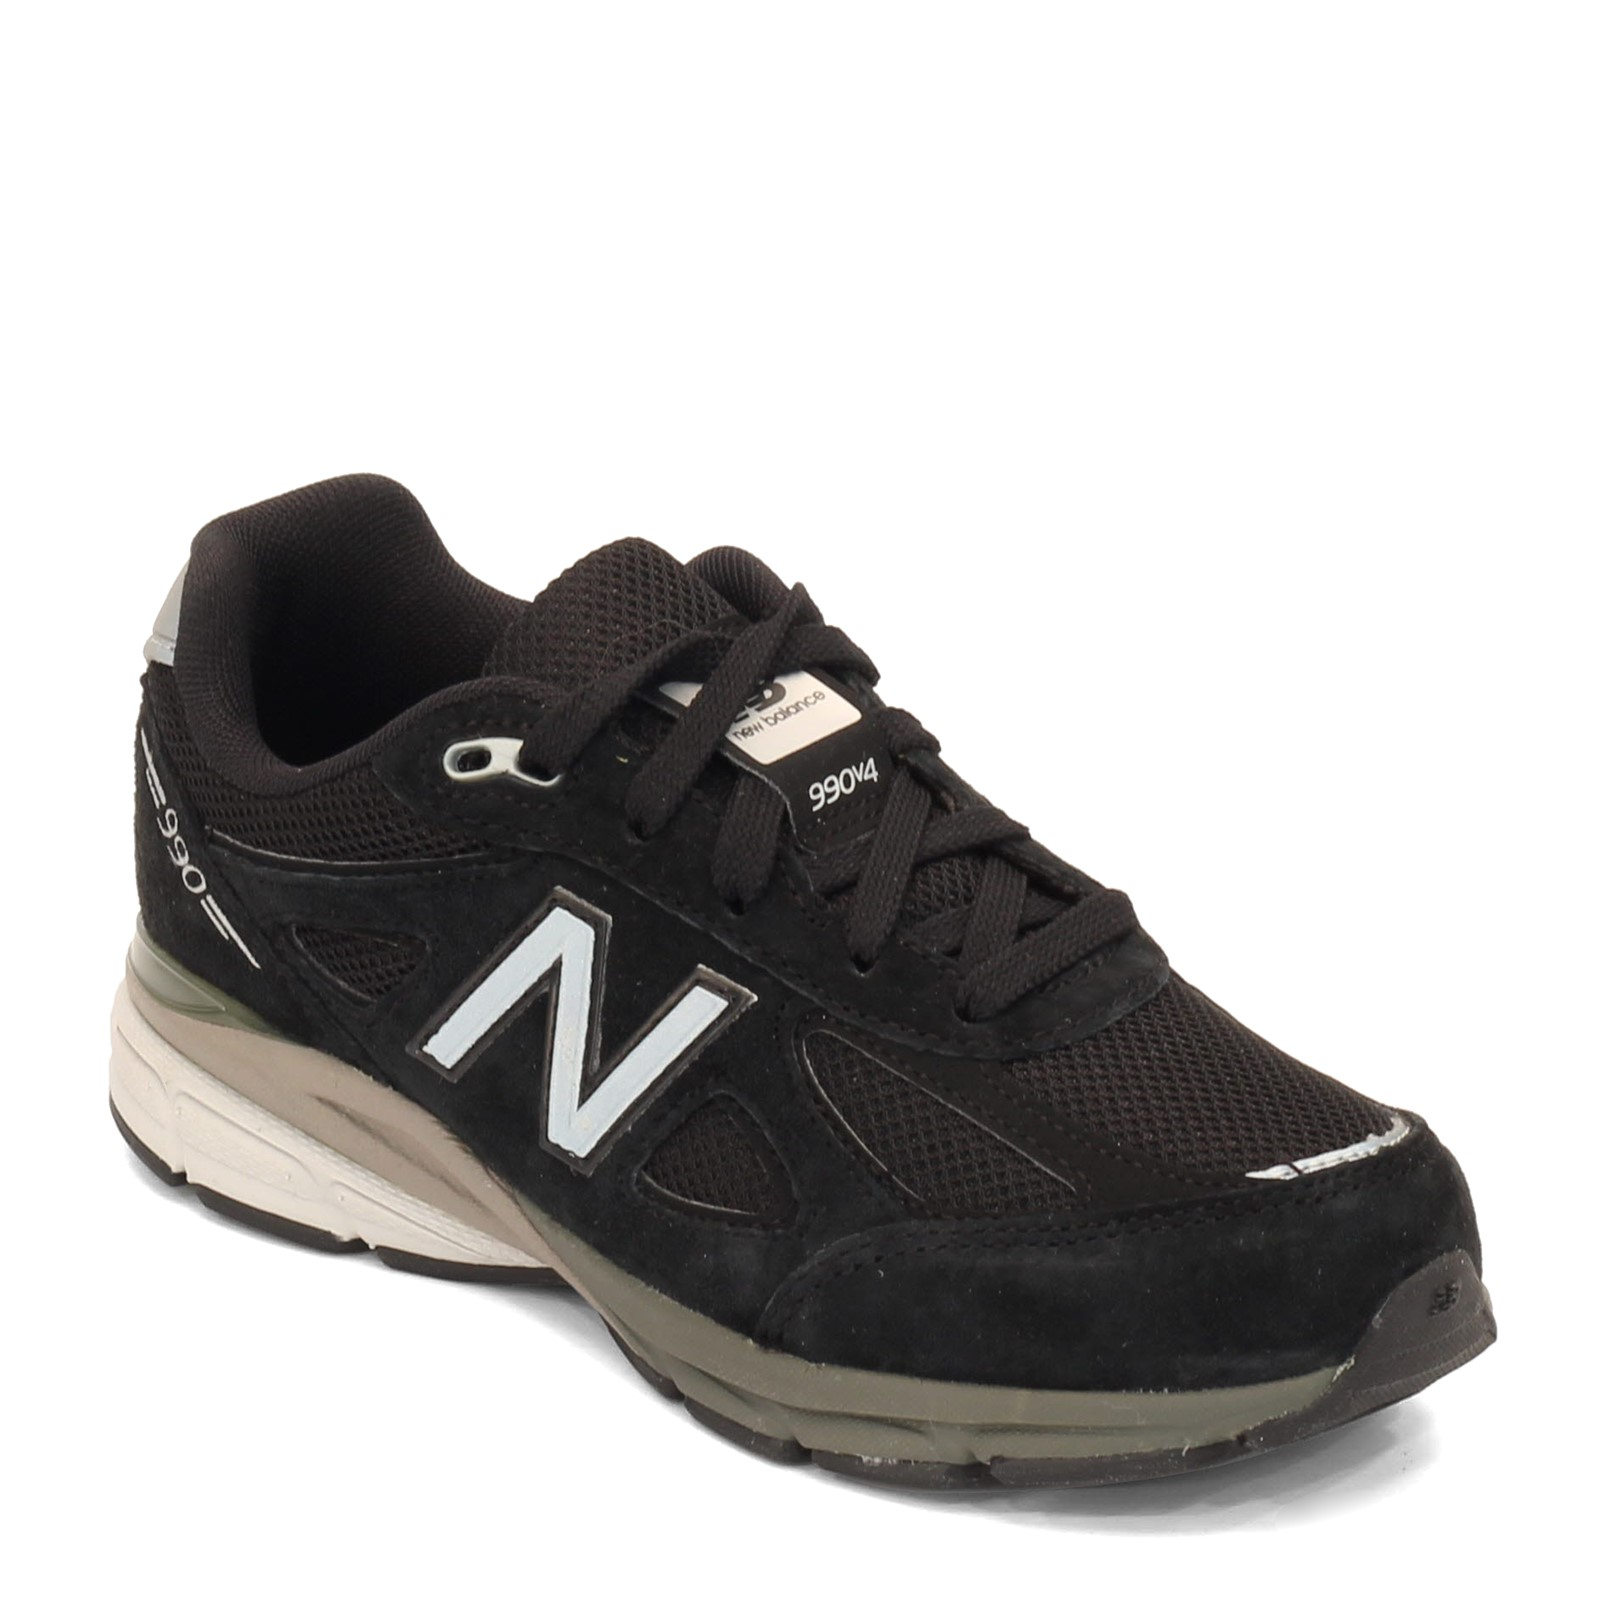 watch 644c5 bbf3f Boy's New Balance, 990 v4 Athletic Sneaker - Little Kid